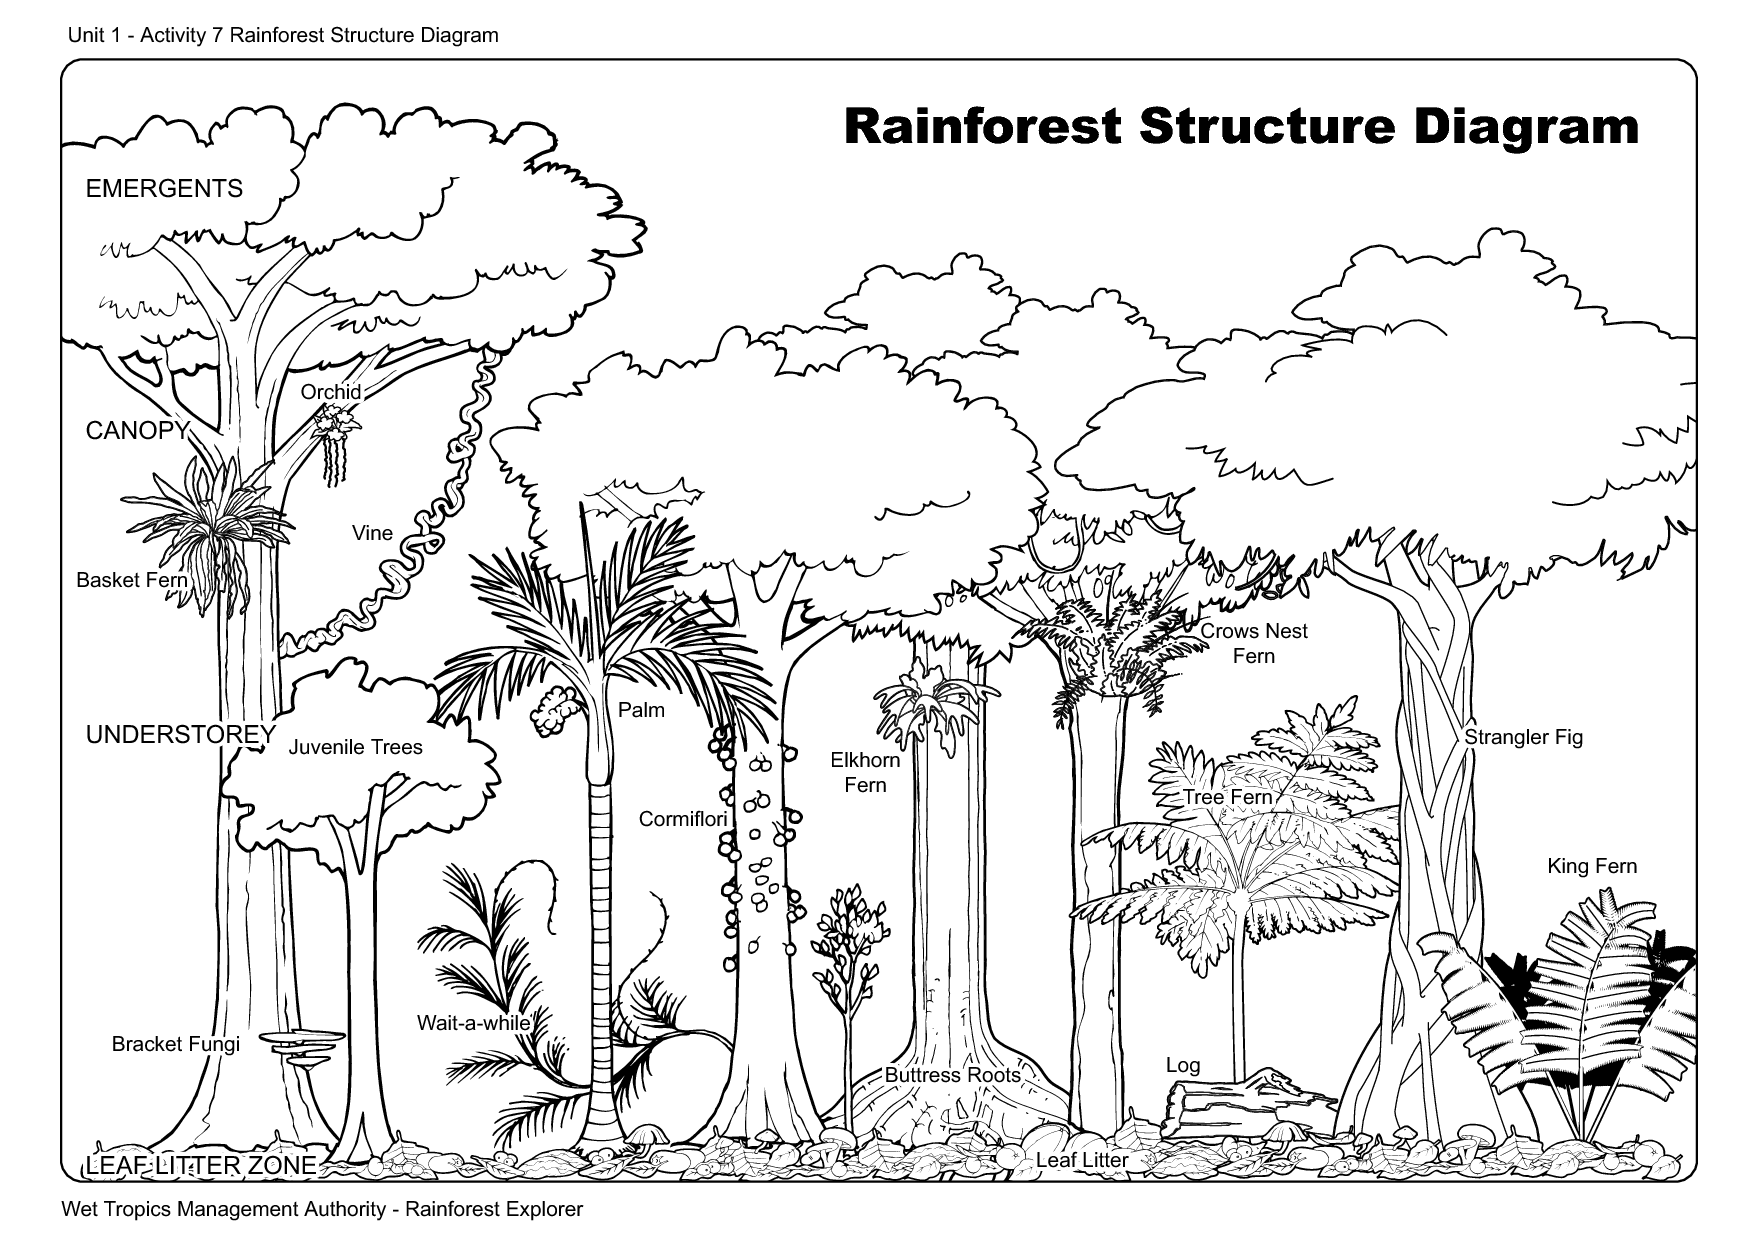 amazon rainforest pictures to print hidden pictures coloring sheets animal coloring pages amazon to rainforest print pictures